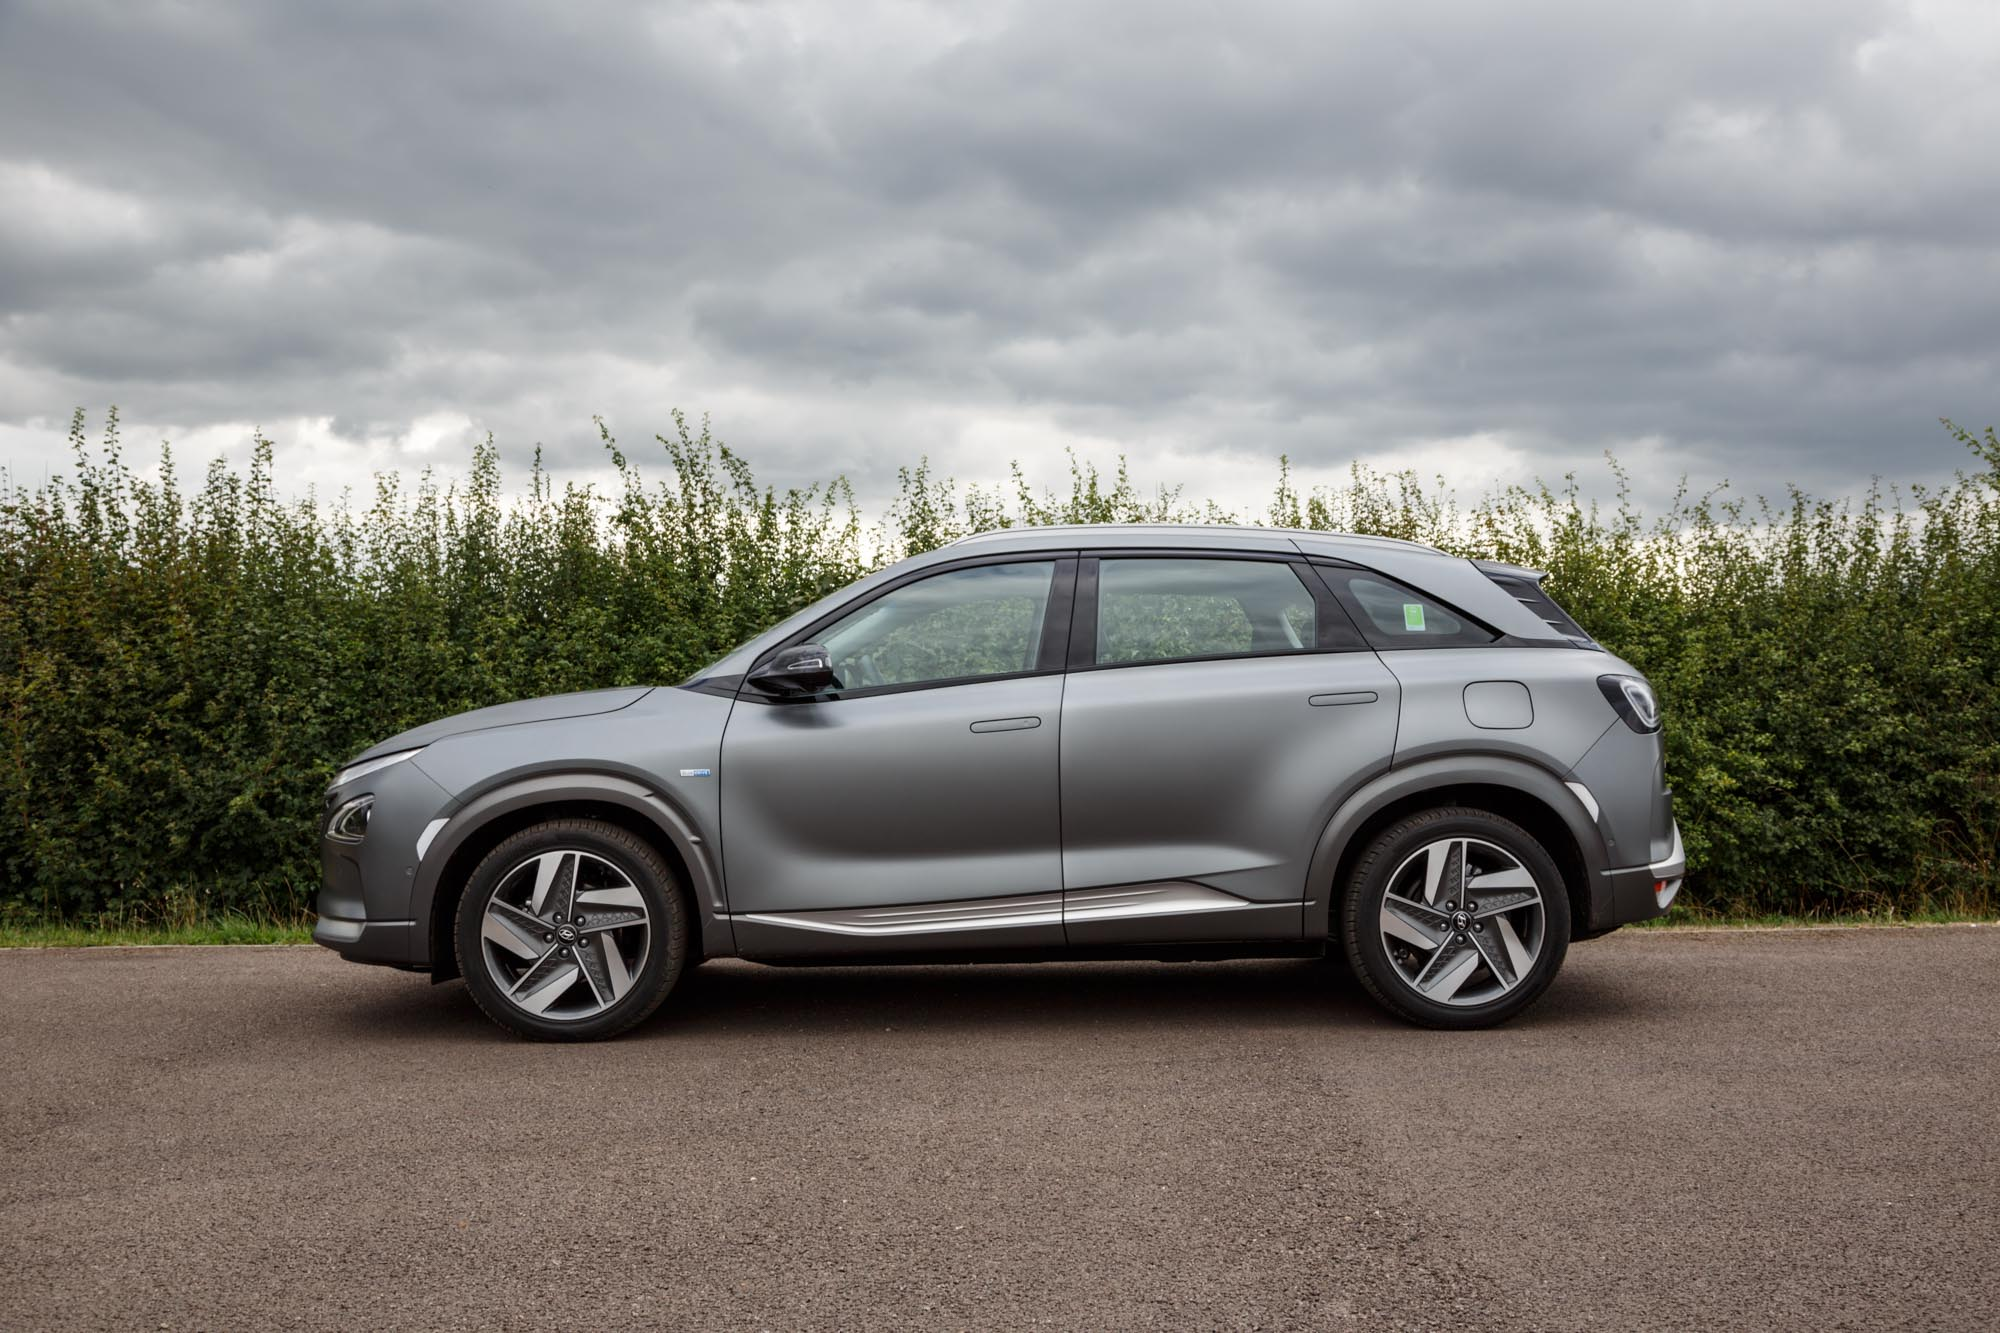 Hyundai NEXO - What Is It Like To Drive a Hydrogen Fuel Cell